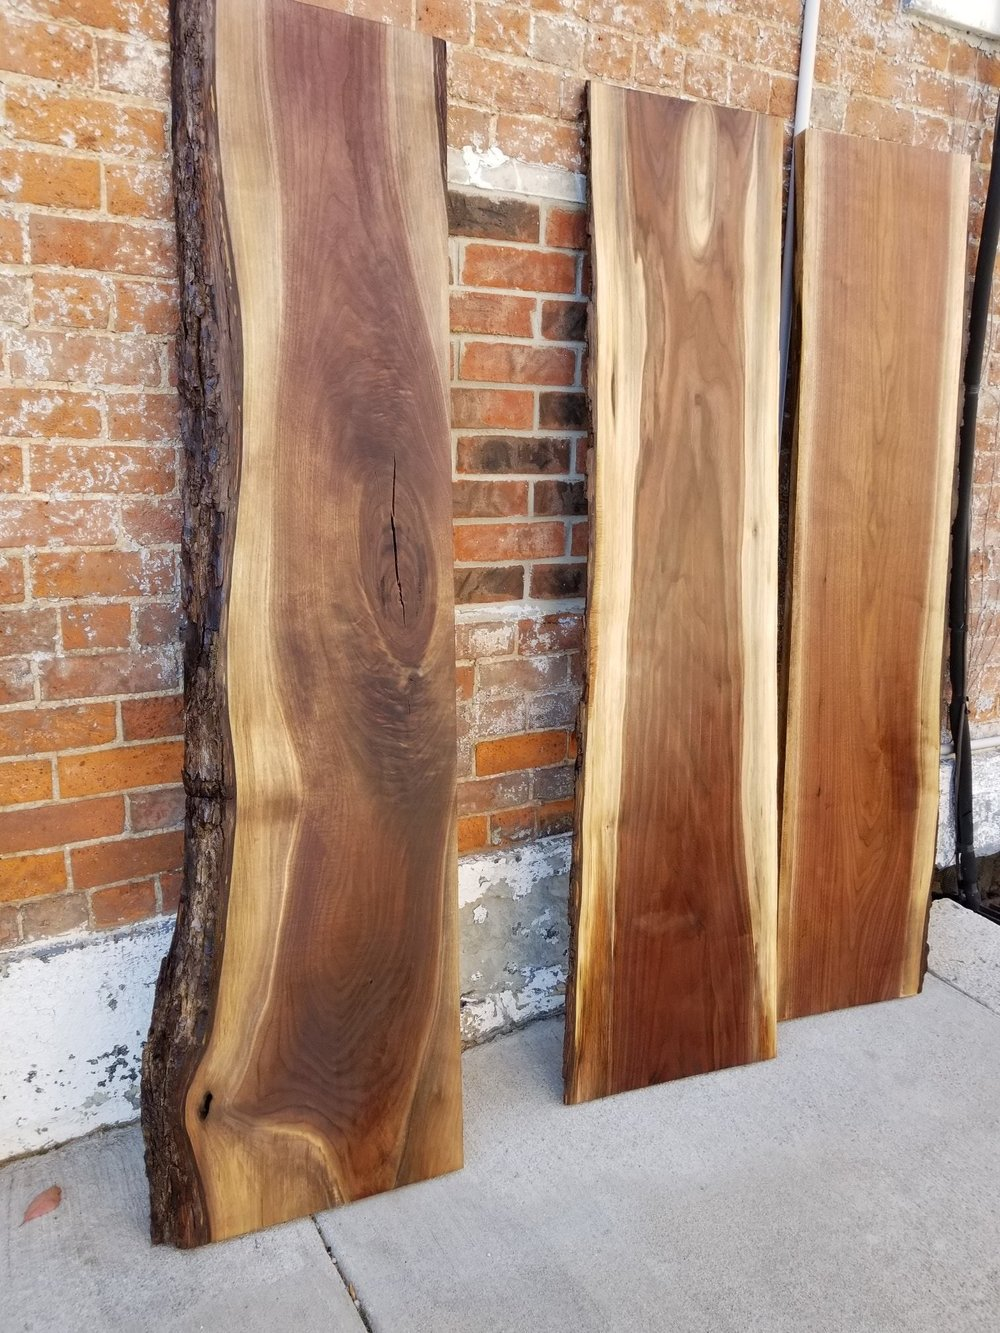 This Black Walnut with the bark will create unique shelving. The natural color tones and variation along with the grain makes this wood stunning.